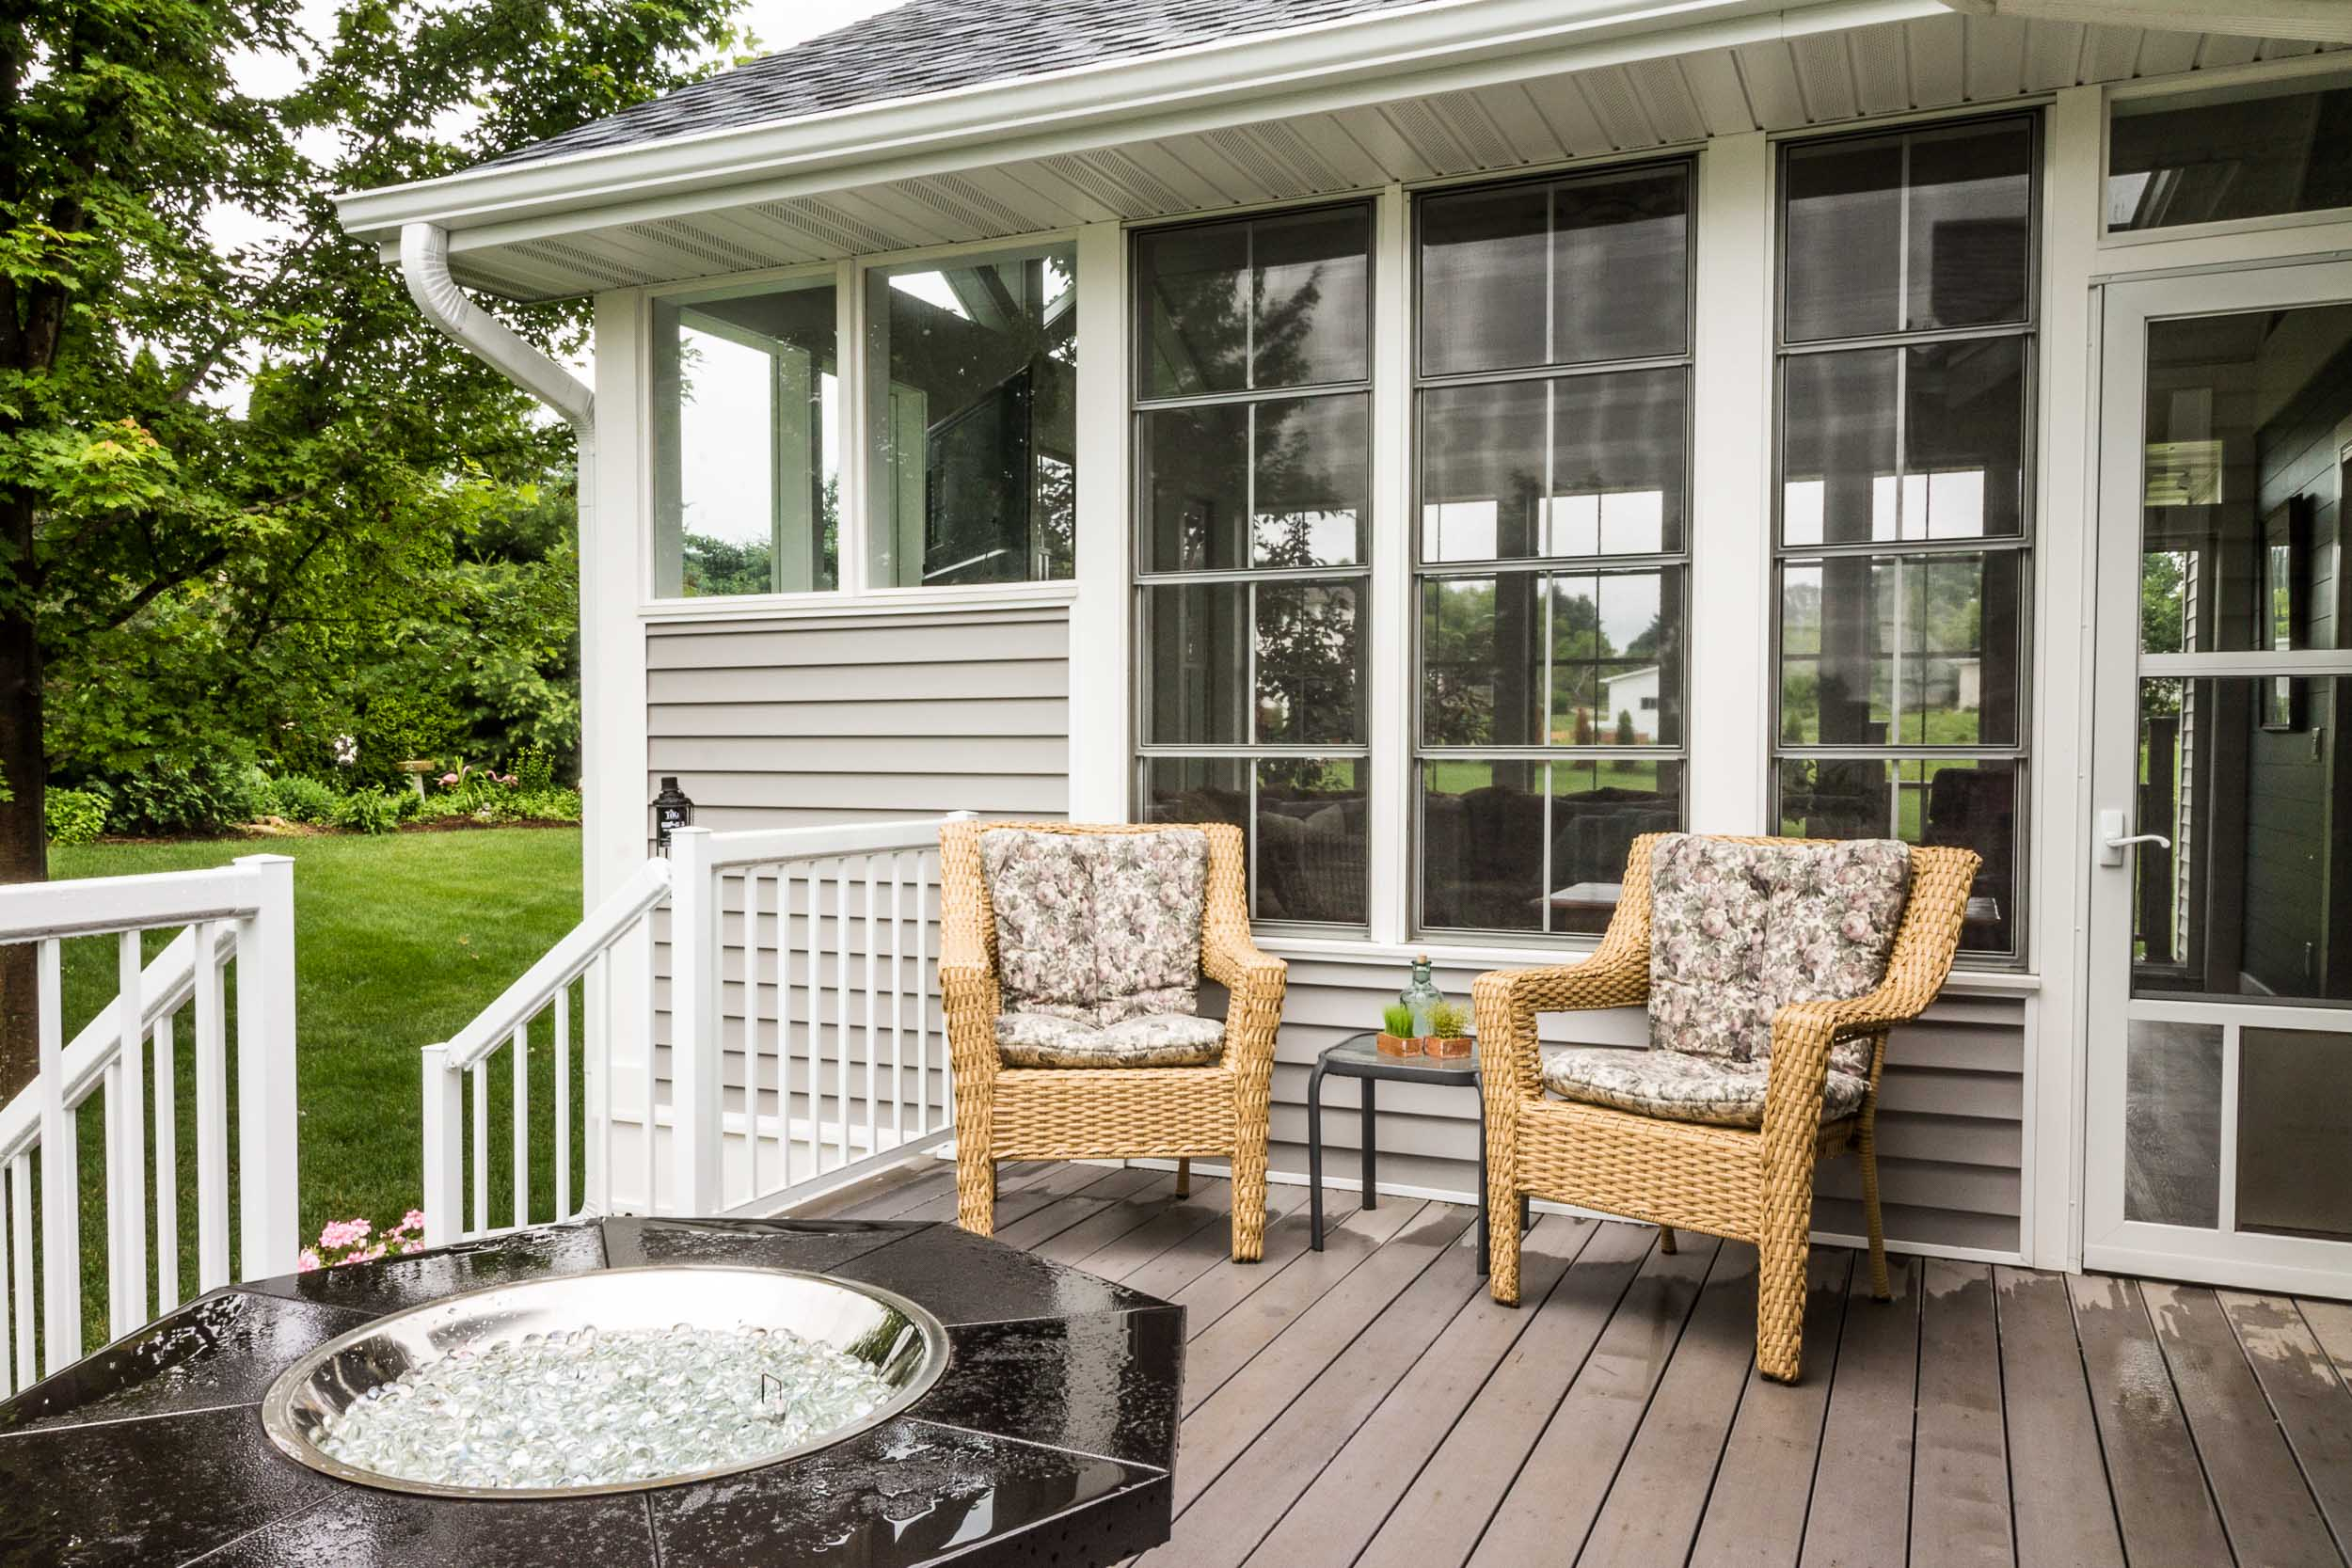 The deck is Secluded From The Neighbors By The Three Season Porch For Privacy